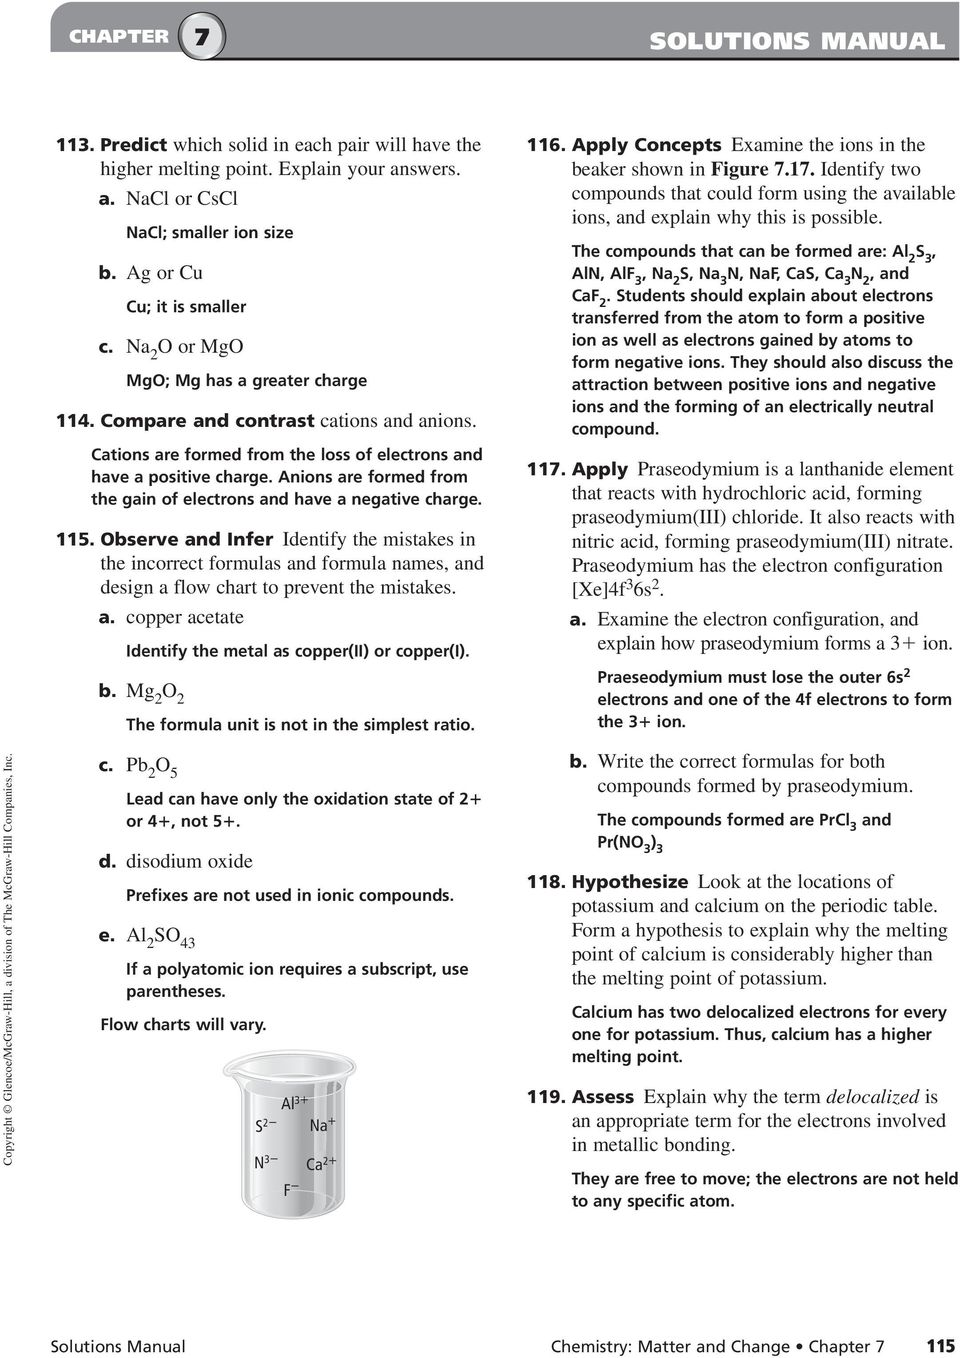 worksheet Teaching Transparency Worksheet Metallic Bonding ionic compounds and metals pdf anions are formed from the gain of electrons have a negative charge 115